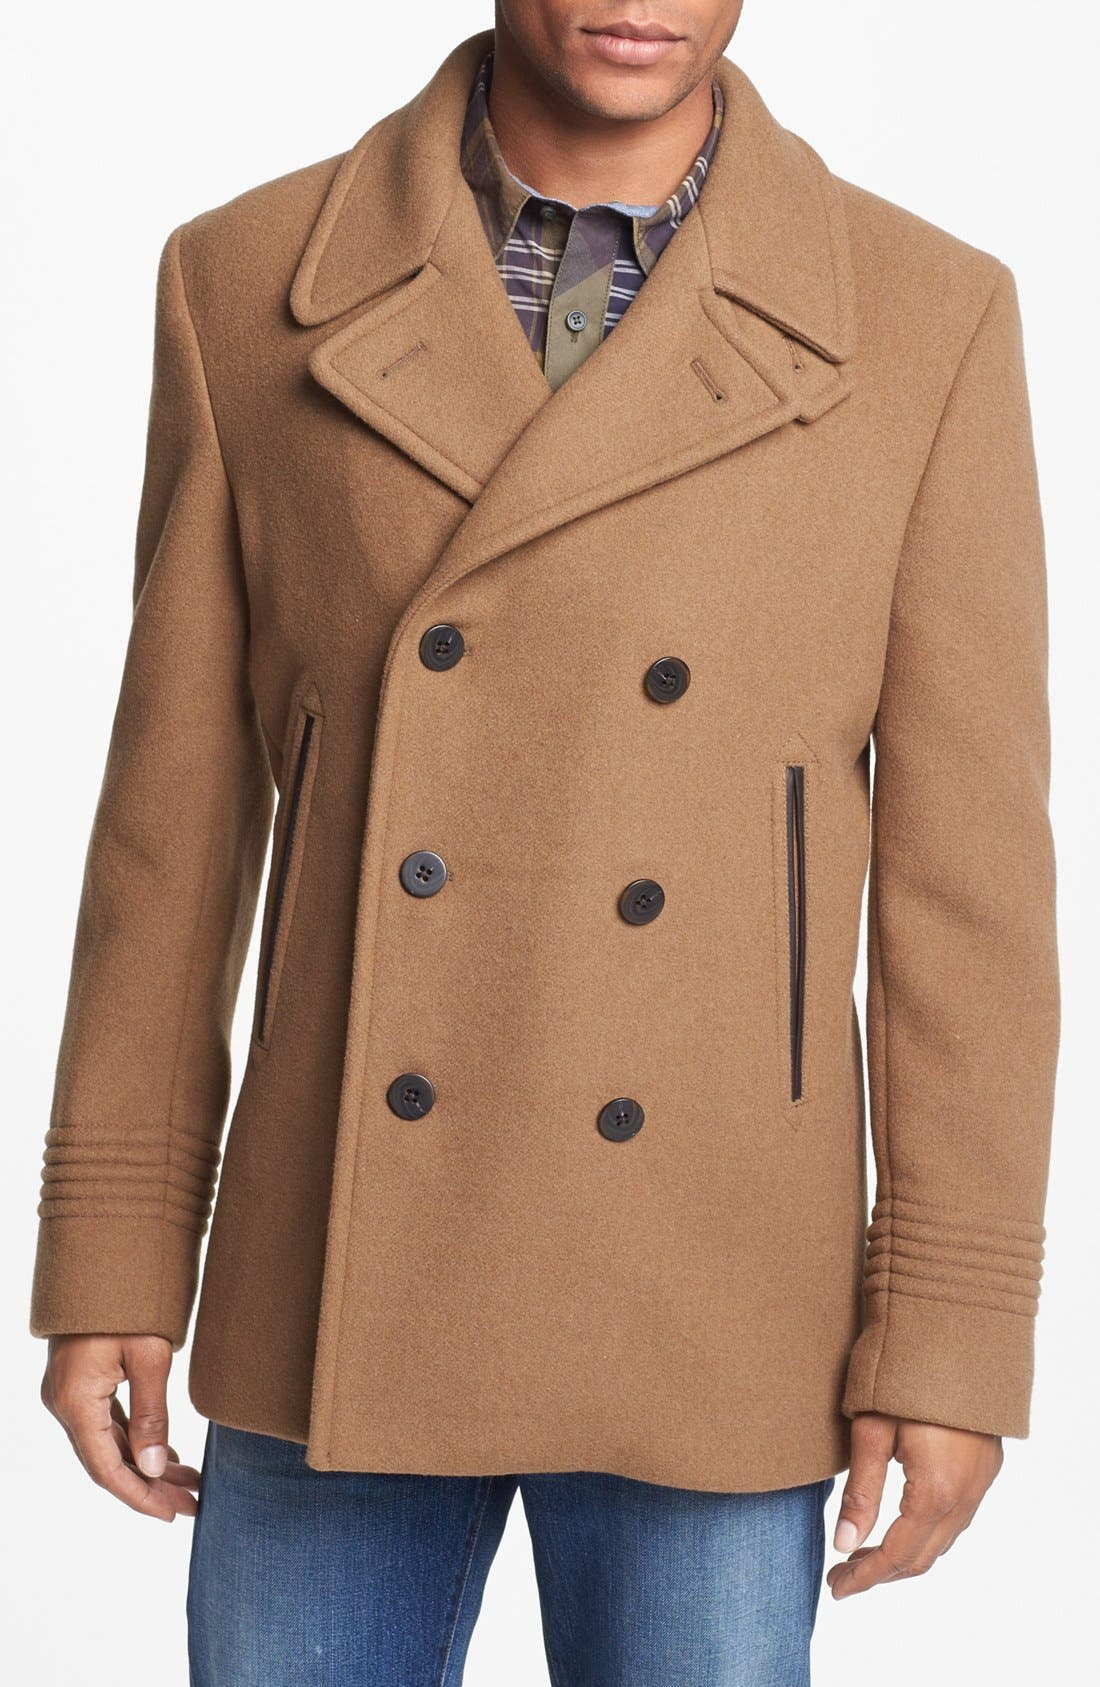 Alternate Image 1 Selected - MARC BY MARC JACOBS 'Rushmore' Double Breasted Wool Blend Peacoat